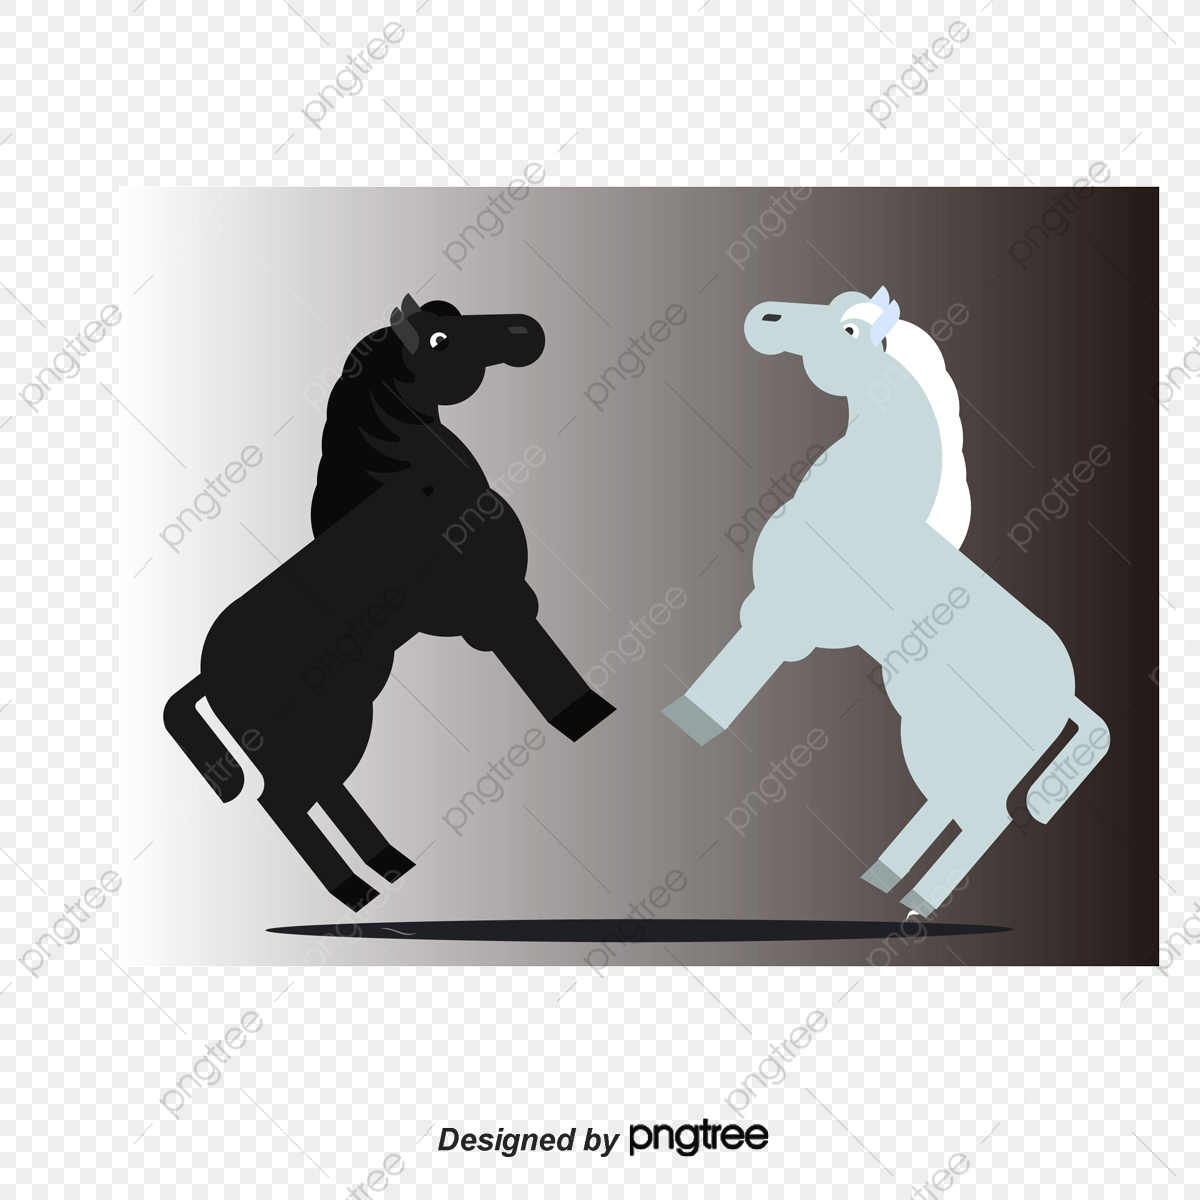 White Horse And Black Horse Cartoon Horse Horses Steed Png Transparent Clipart Image And Psd File For Free Download